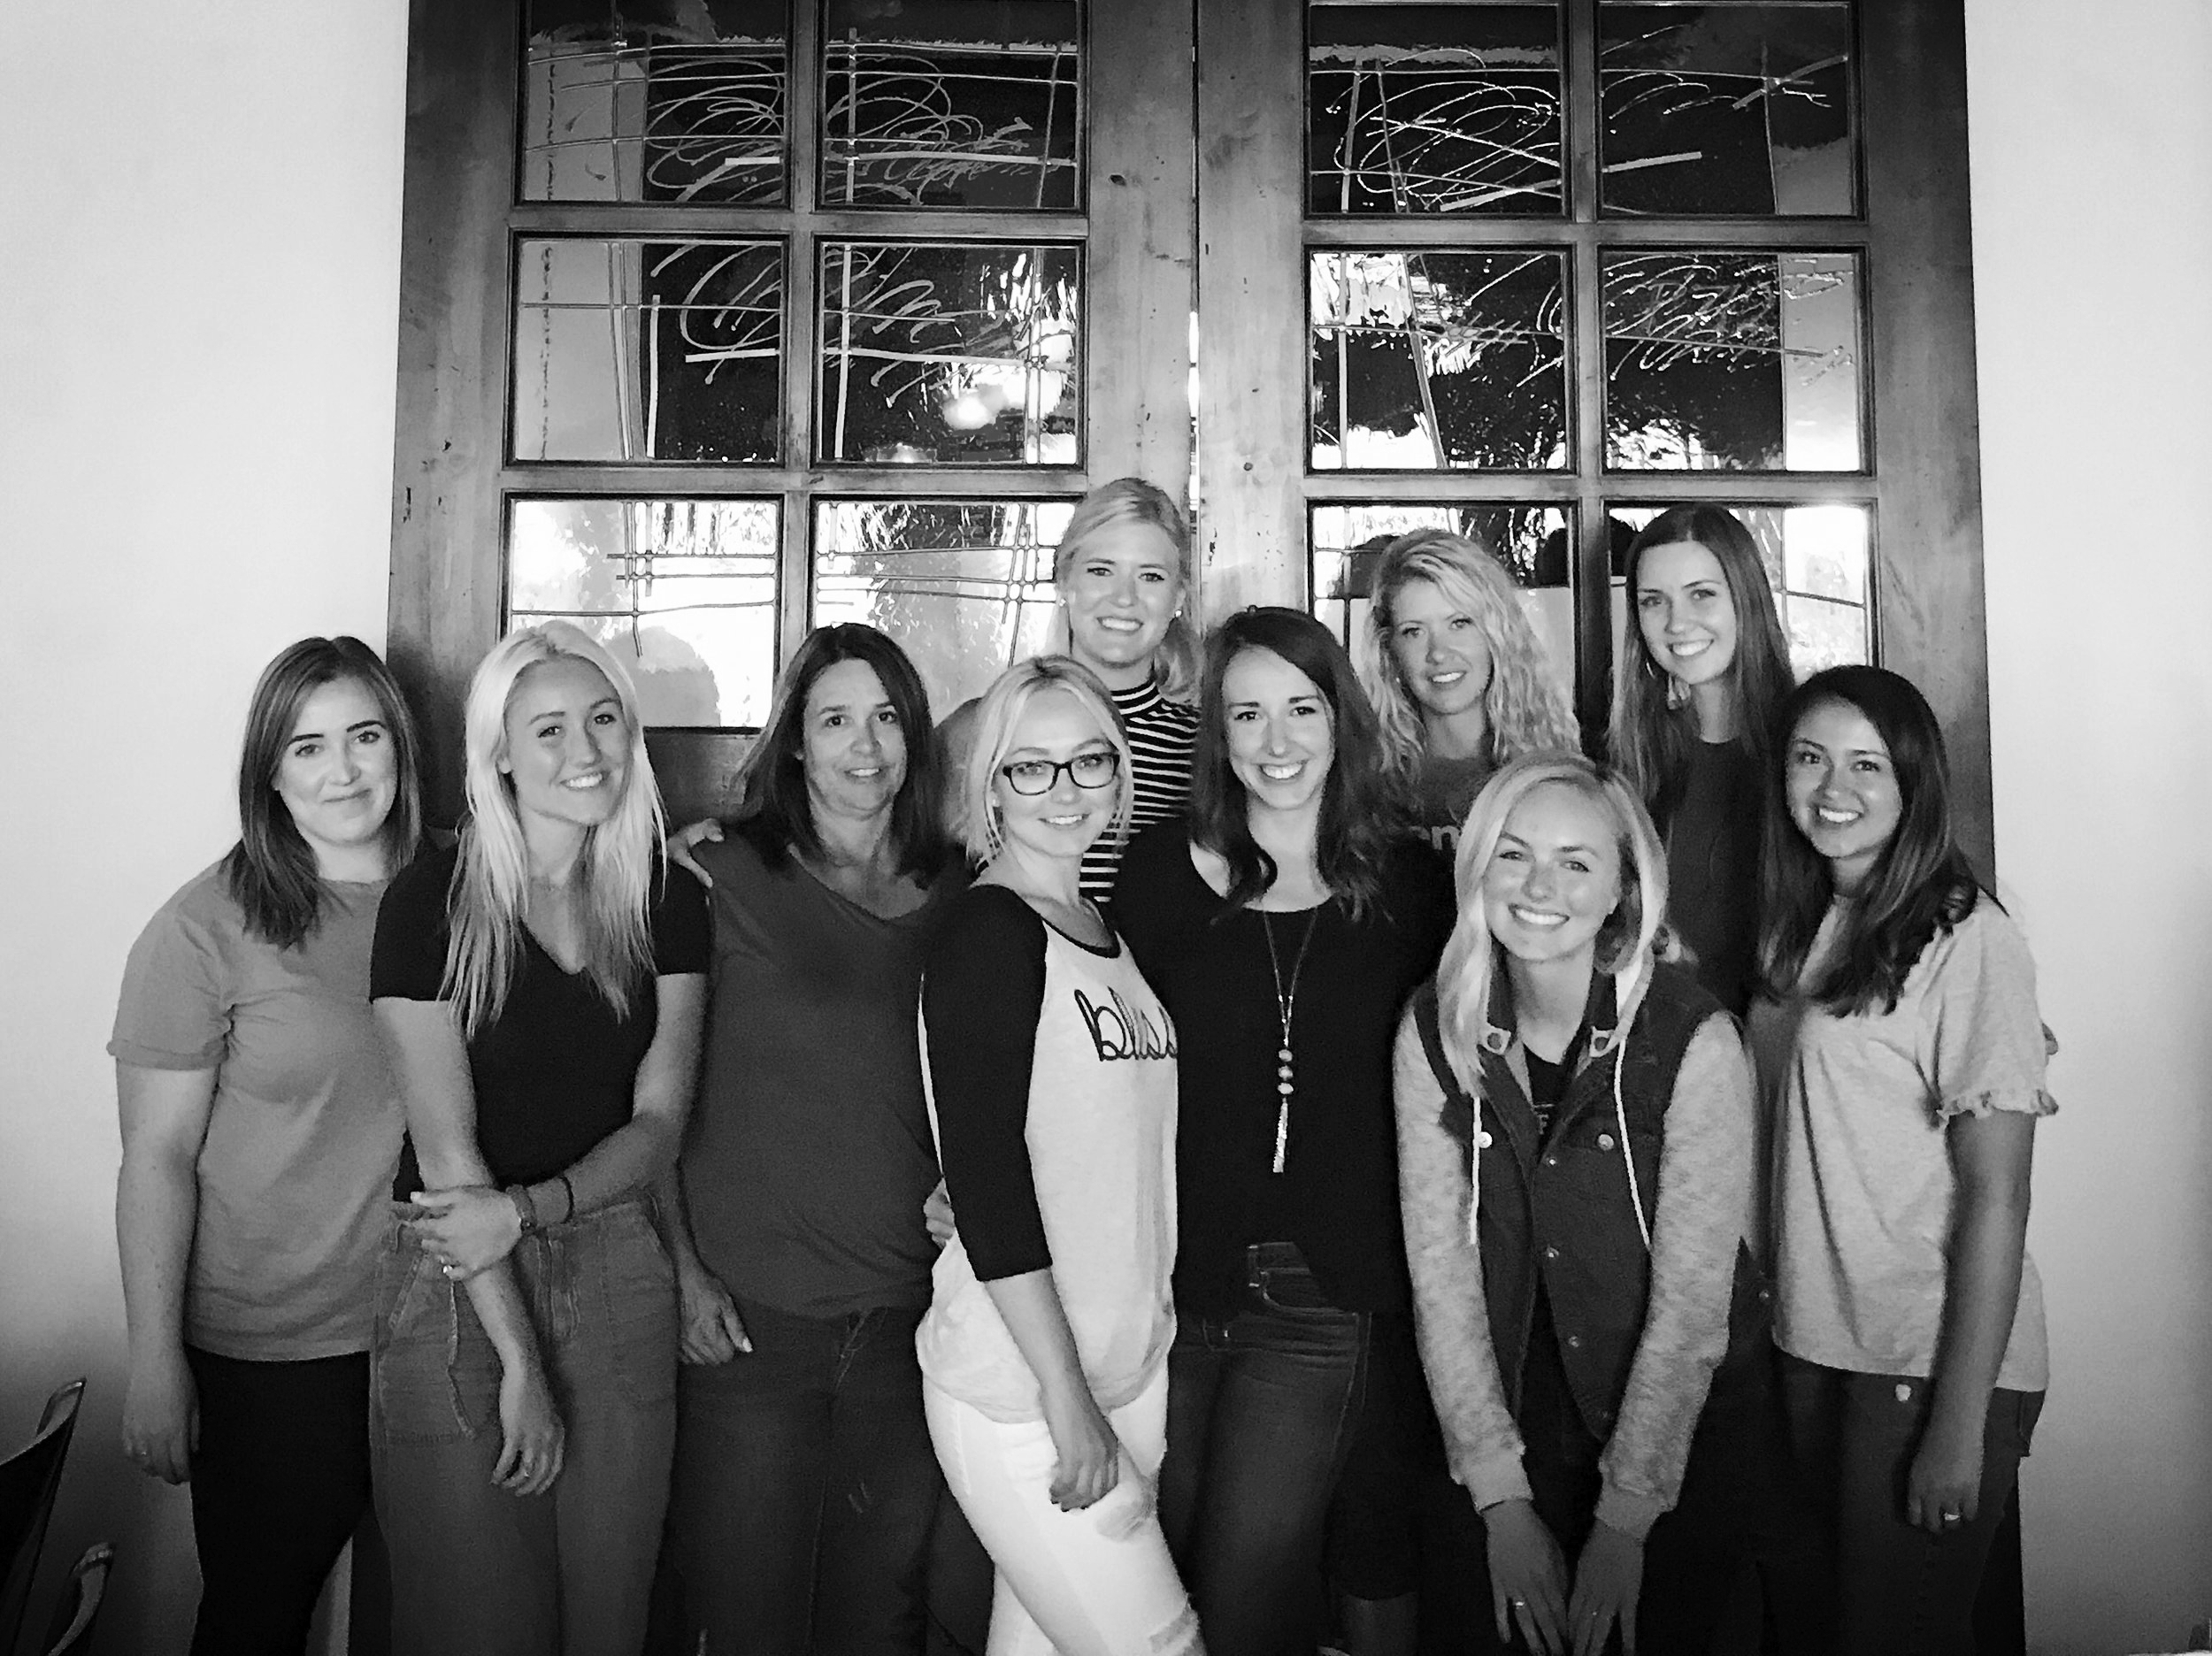 I started working at a healthcare marketing startup company called Banyan. All the girls got together for a lunch at Pizzeria 712 for an employees birthday. So fun!